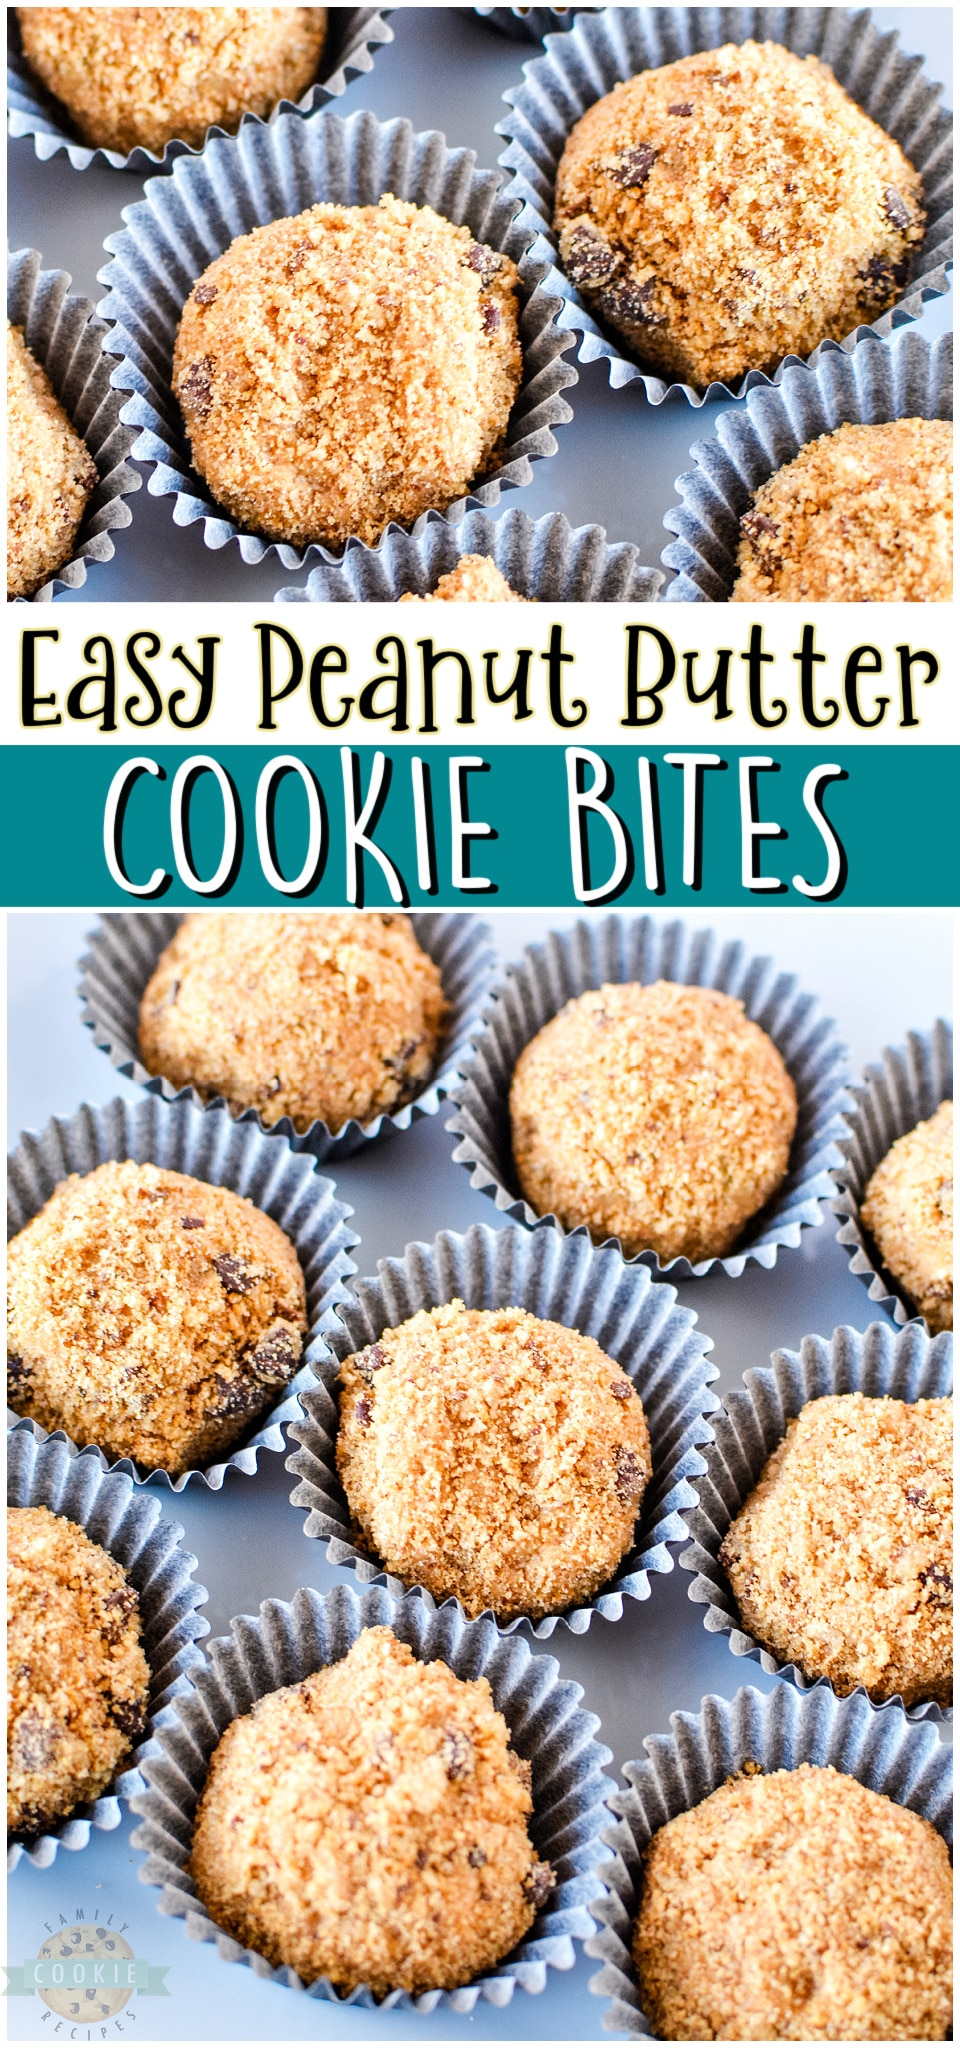 Peanut butter cookie bites made with just 3 ingredients including store-bought chocolate chip cookies, peanut butter & powdered sugar. Simple, tasty no-bake cookie recipe that is fun to make & eat!